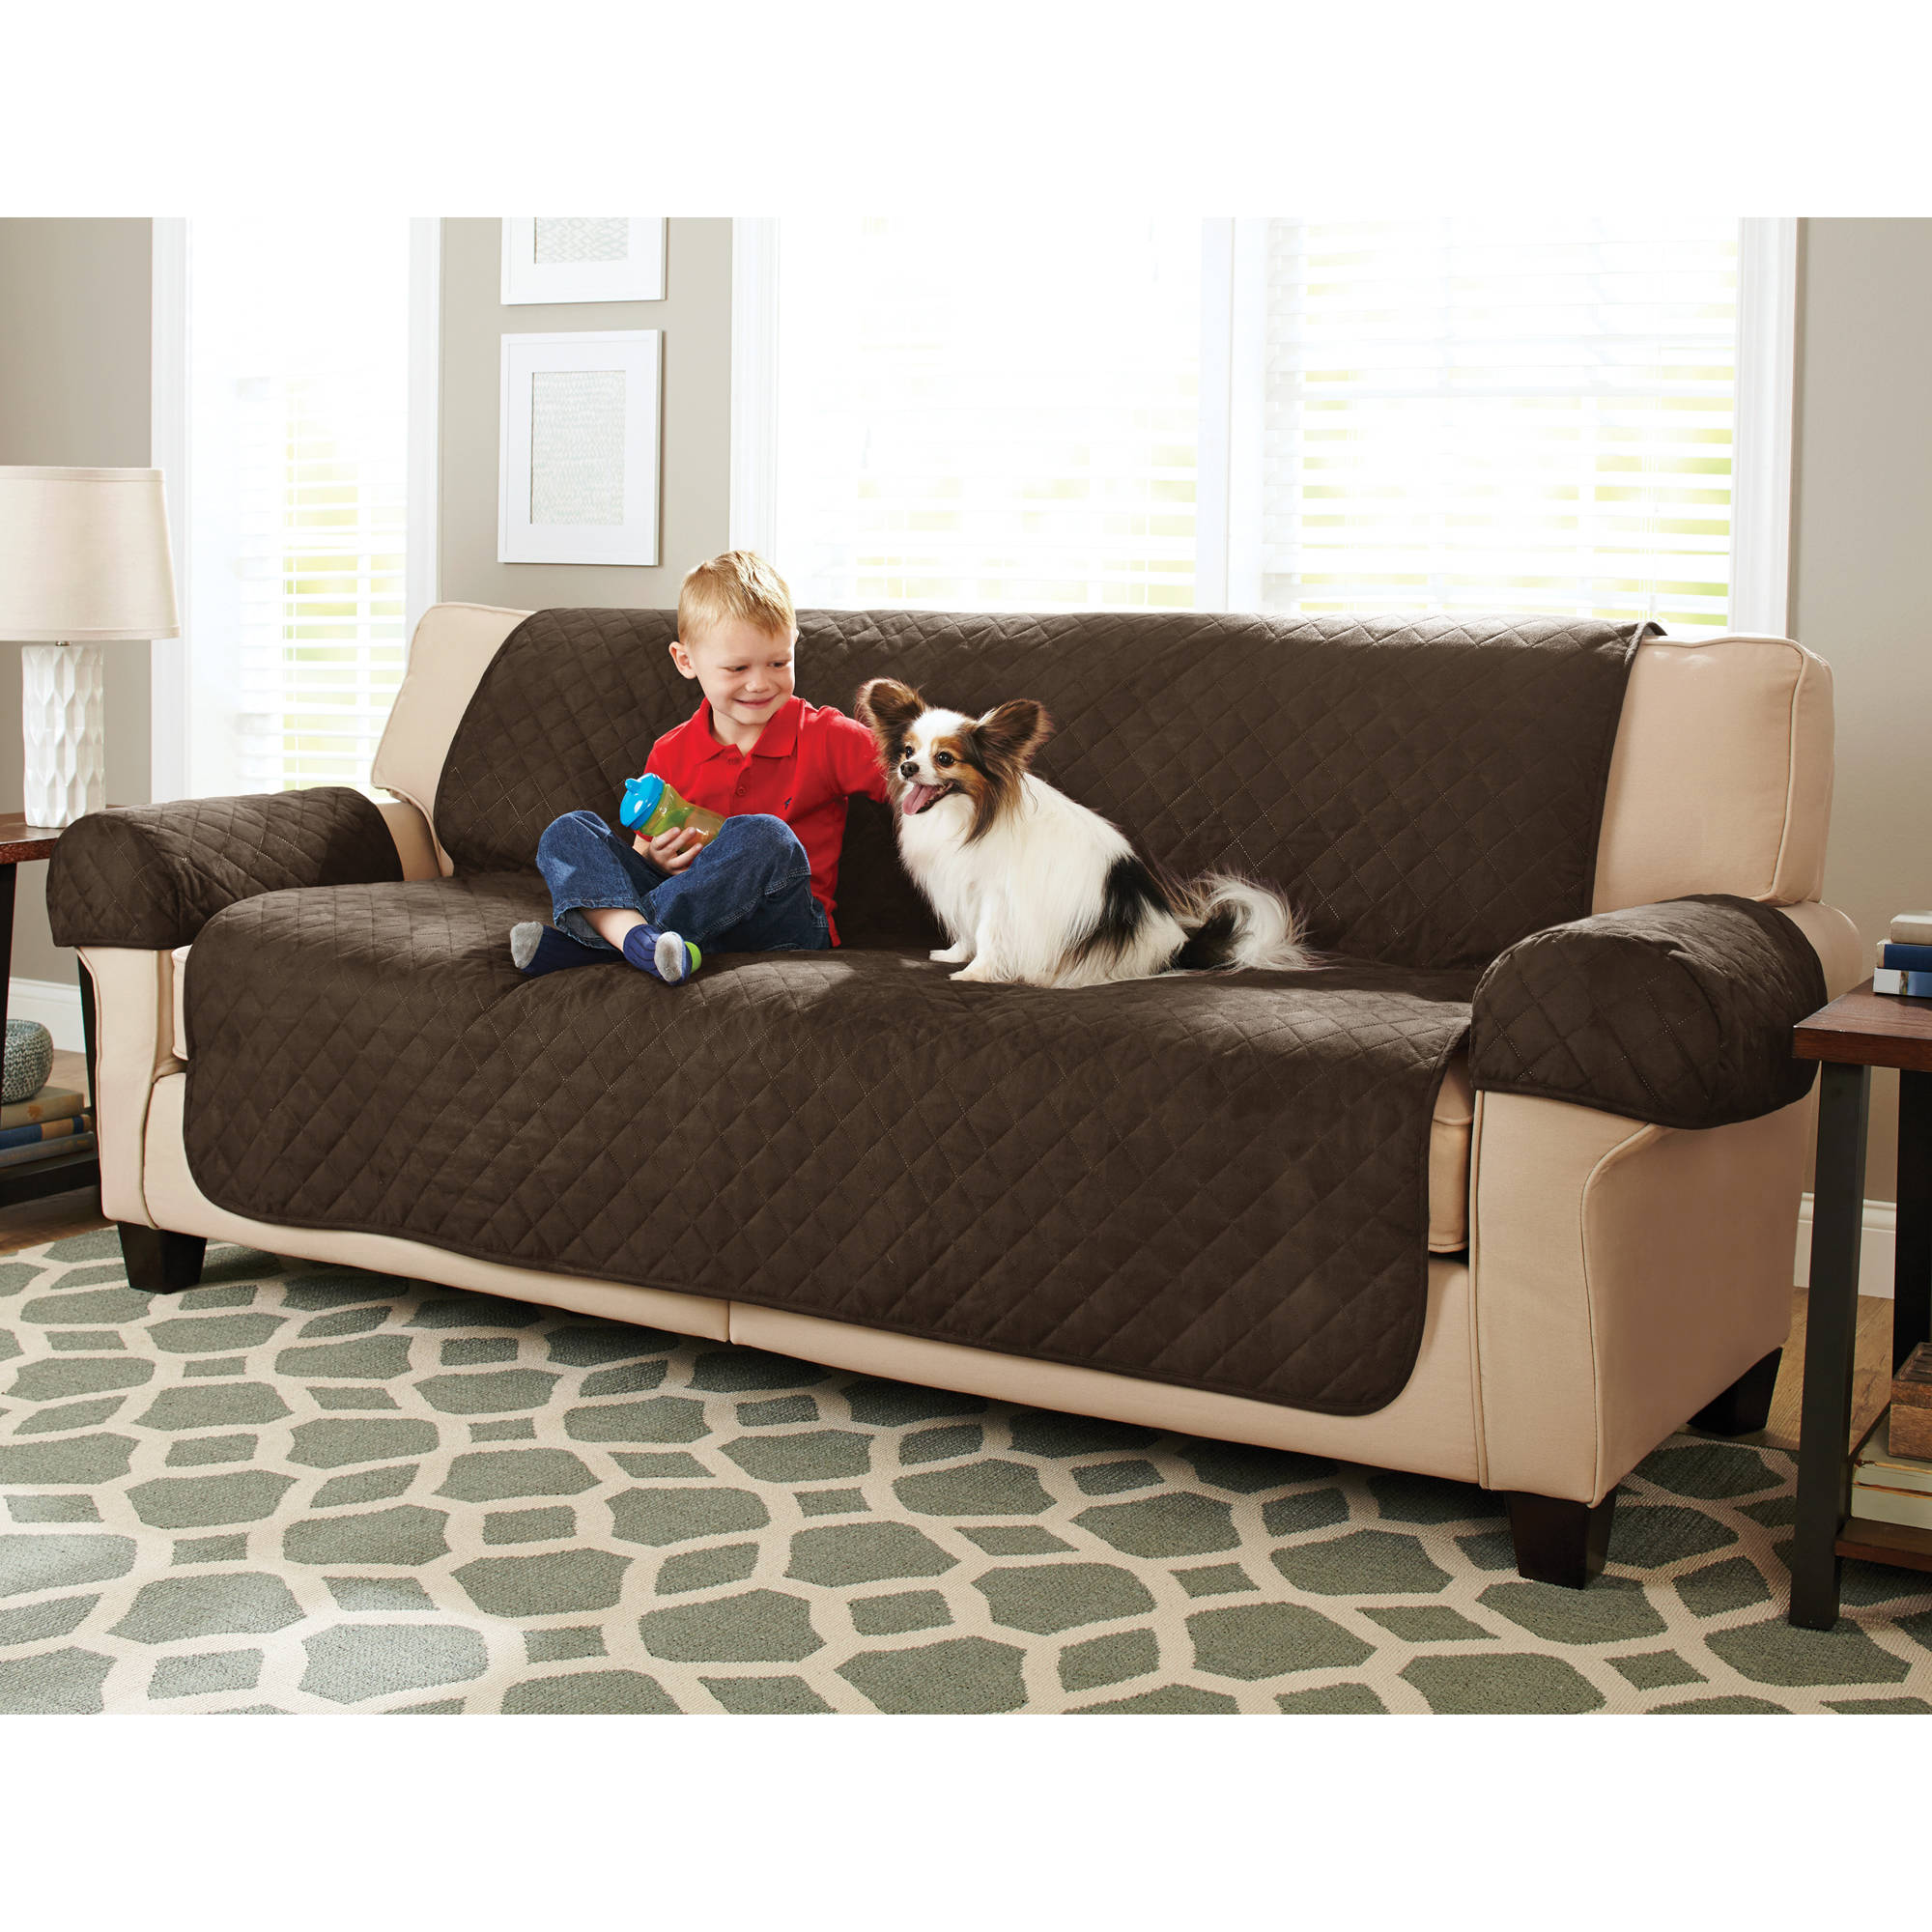 Better homes and gardens waterproof non slip faux suede pet better homes and gardens waterproof non slip faux suede petfurniture sofa cover walmart parisarafo Gallery